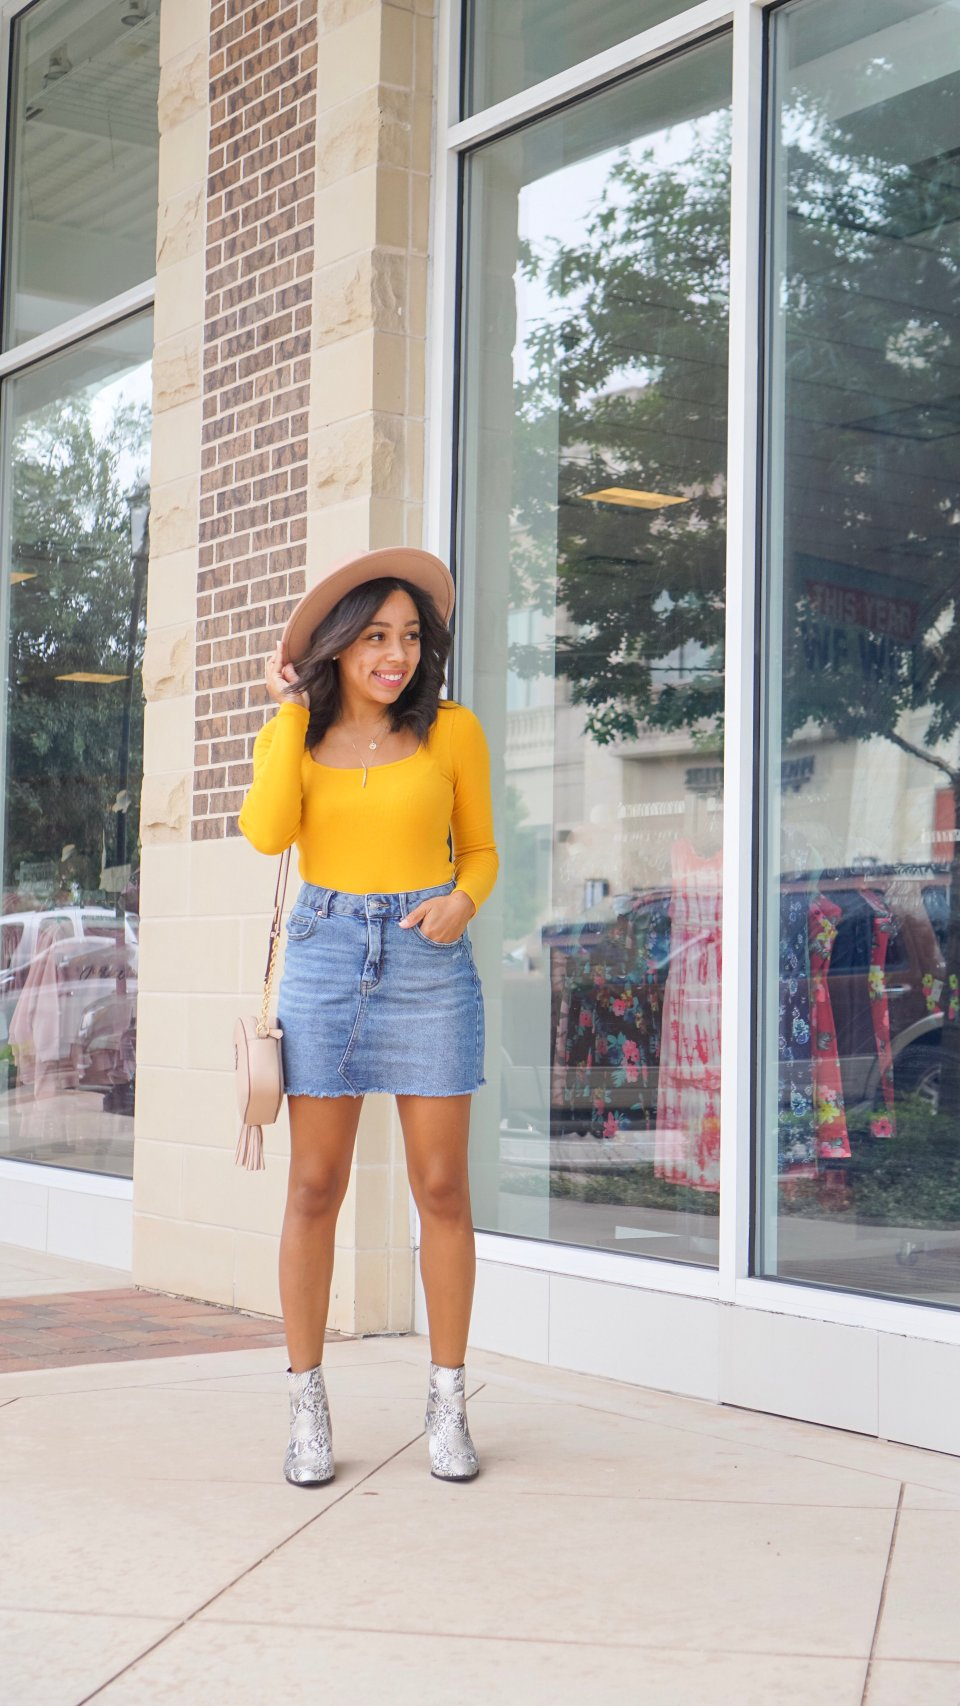 Trendy Thursday LinkUp + How to Style a Denim Skirt